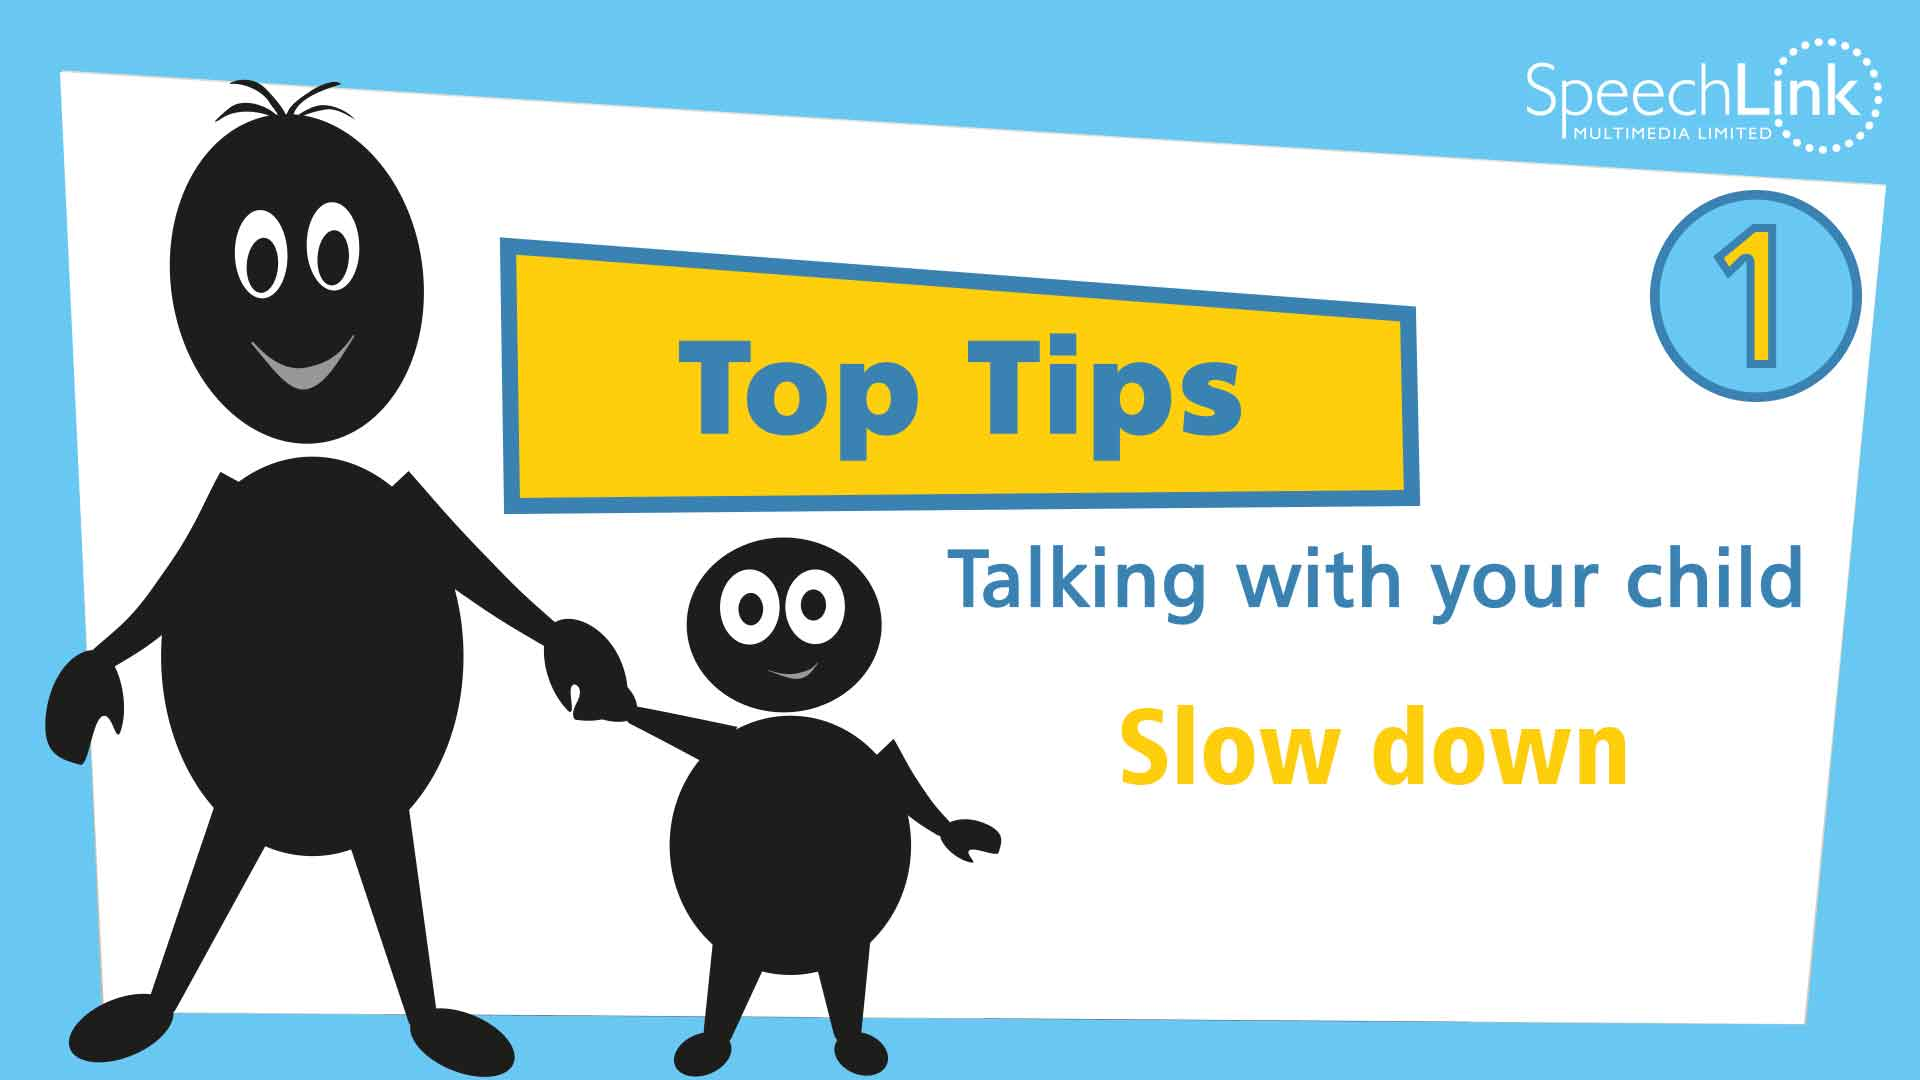 Top Tips 1 - Talking with your child, Slow Down